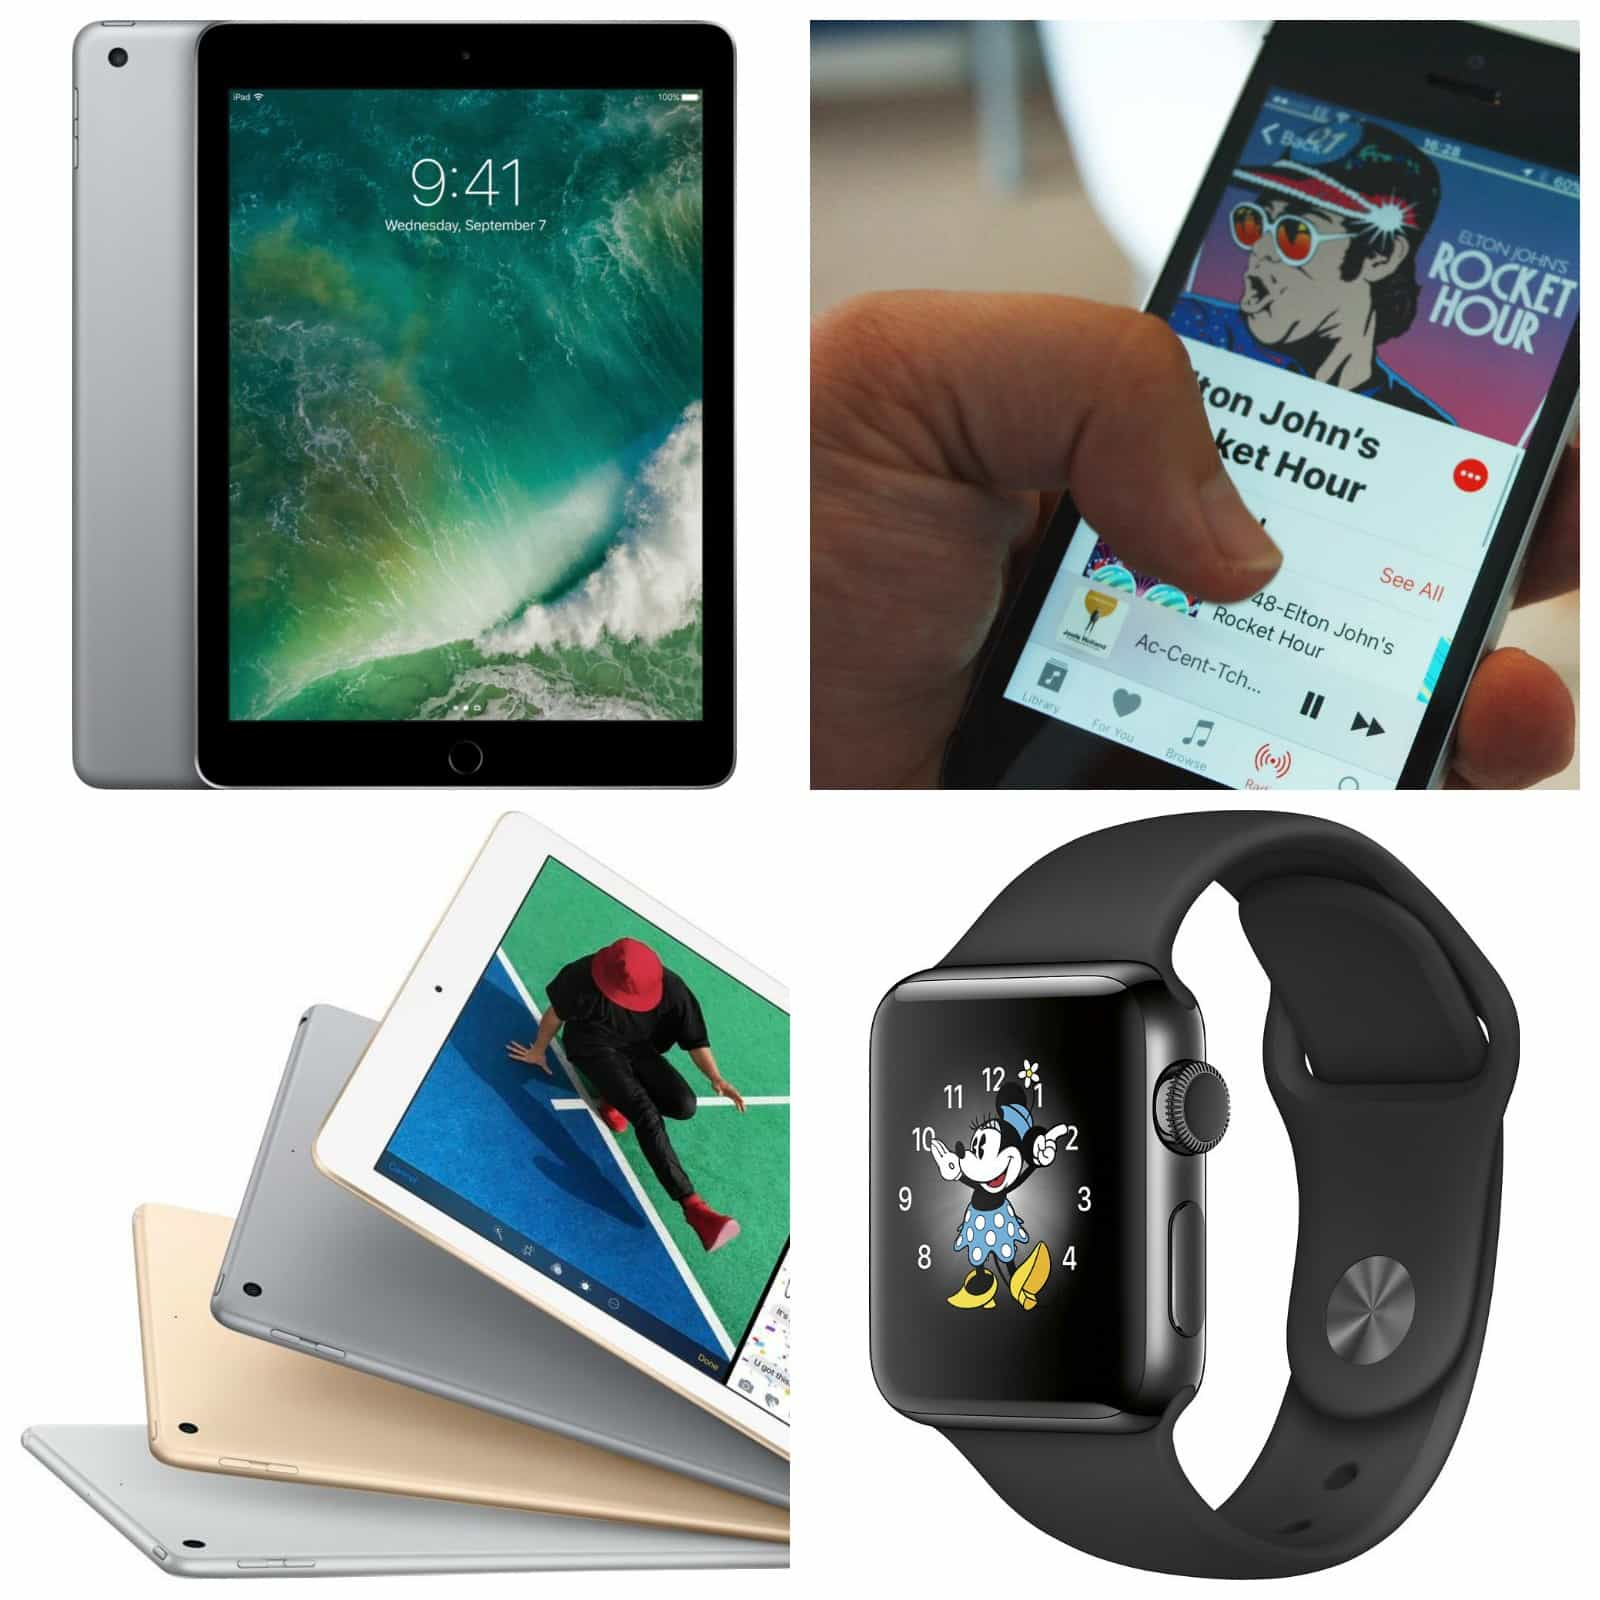 Apple deals on Apple Music and iPads